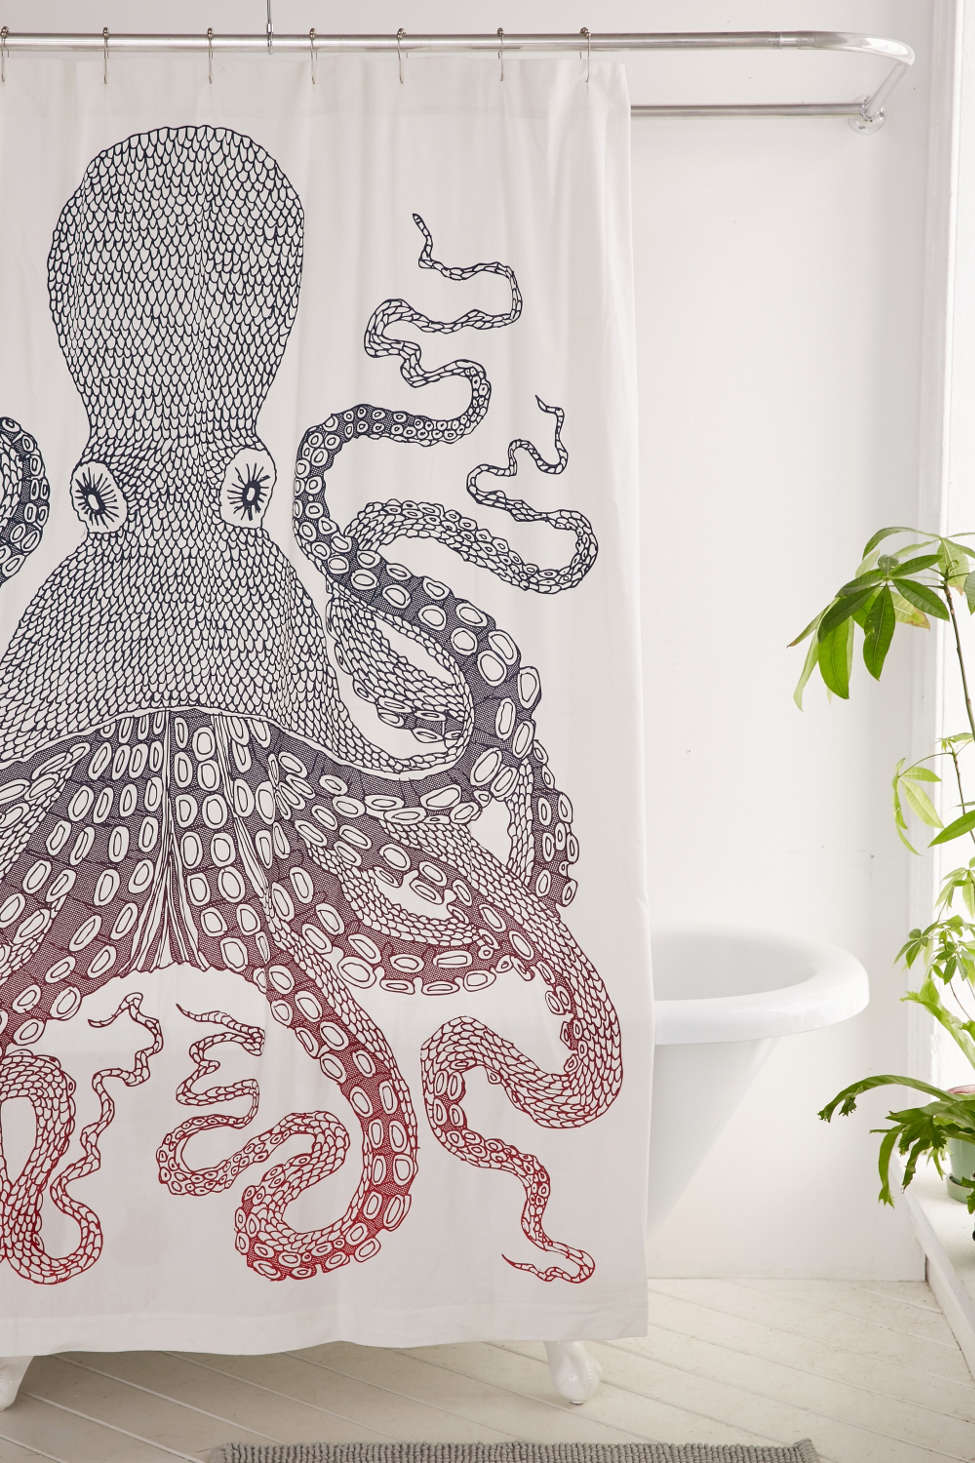 Slide View: 1: Nate Duval Giant Octopus Shower Curtain